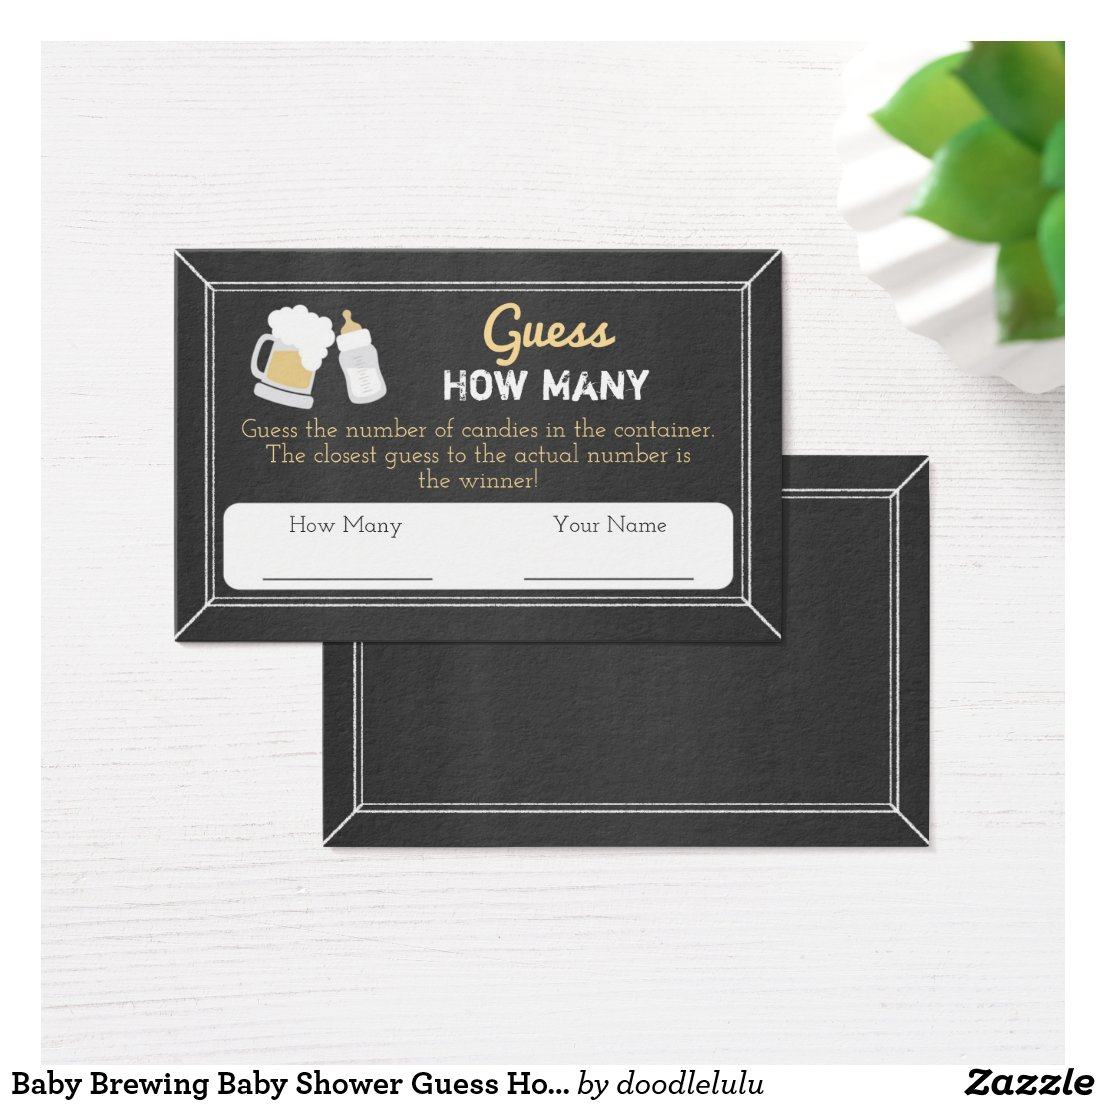 Baby Brewing Baby Shower Guess How Many Guest Card